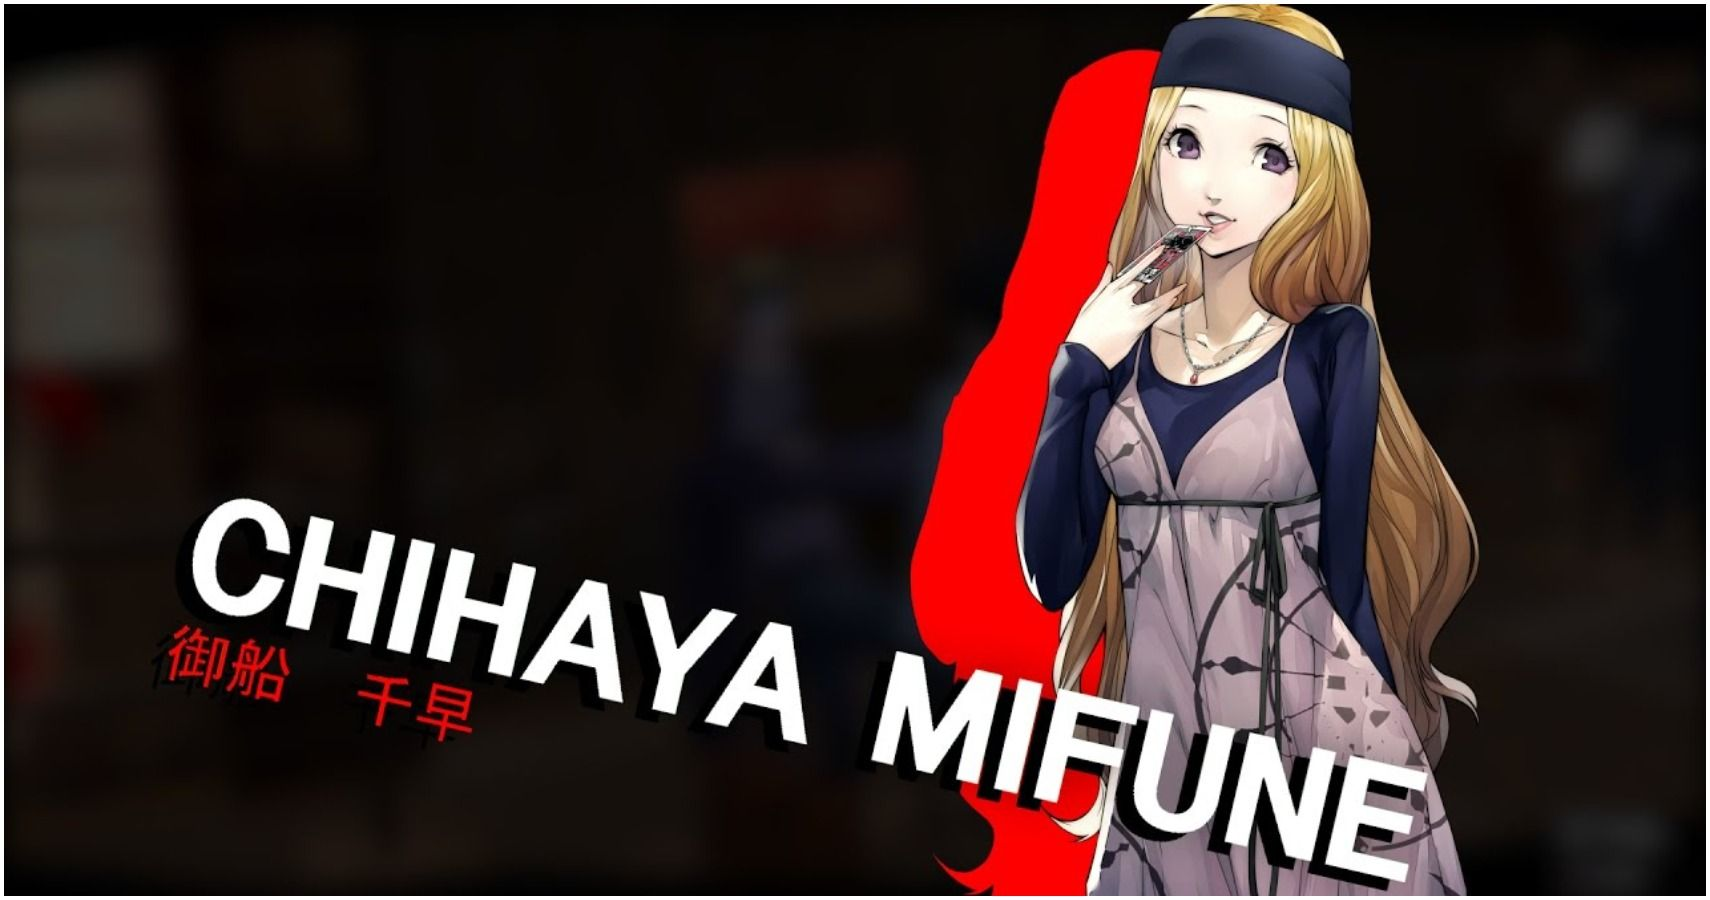 Persona 5 Royal: How To Romance Chihaya